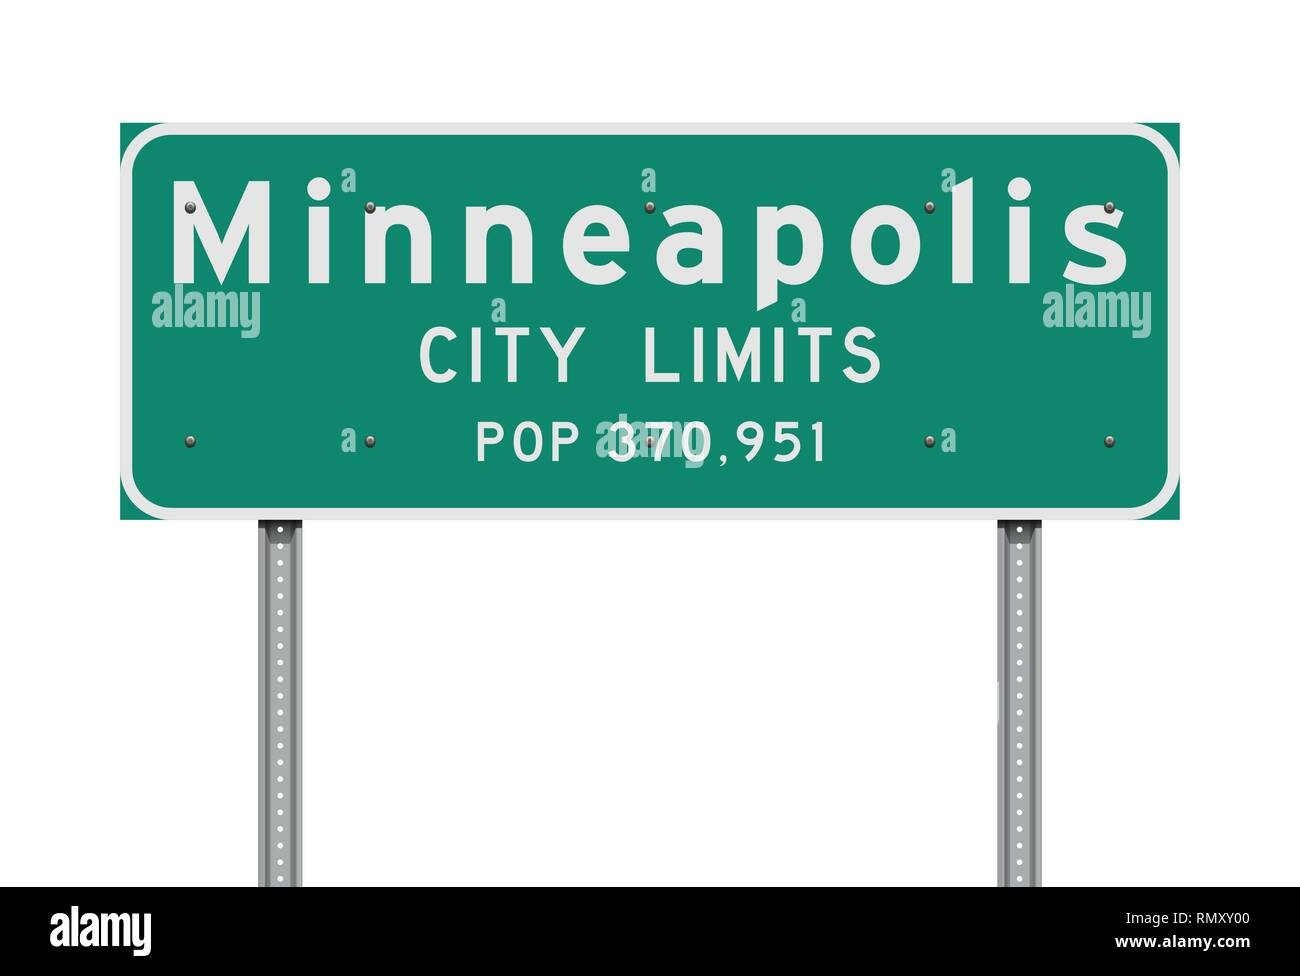 Vector illustration of the Minneapolis City Limits green road sign - Stock Image